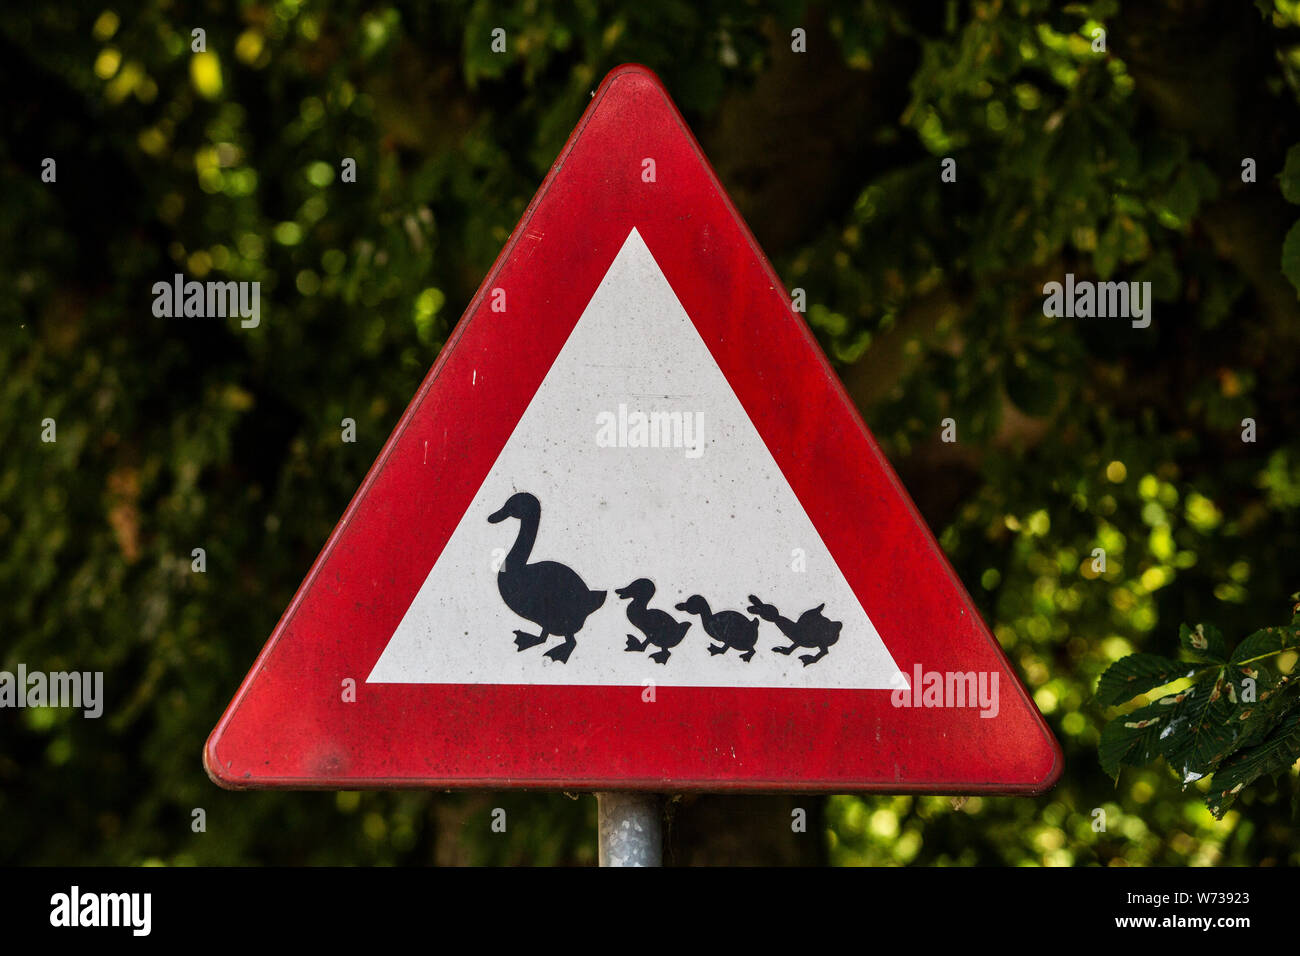 Traffic Sign For Protect Ducks And Biddys In A Parkway In The Netherlands Stock Photo 262531083 Alamy